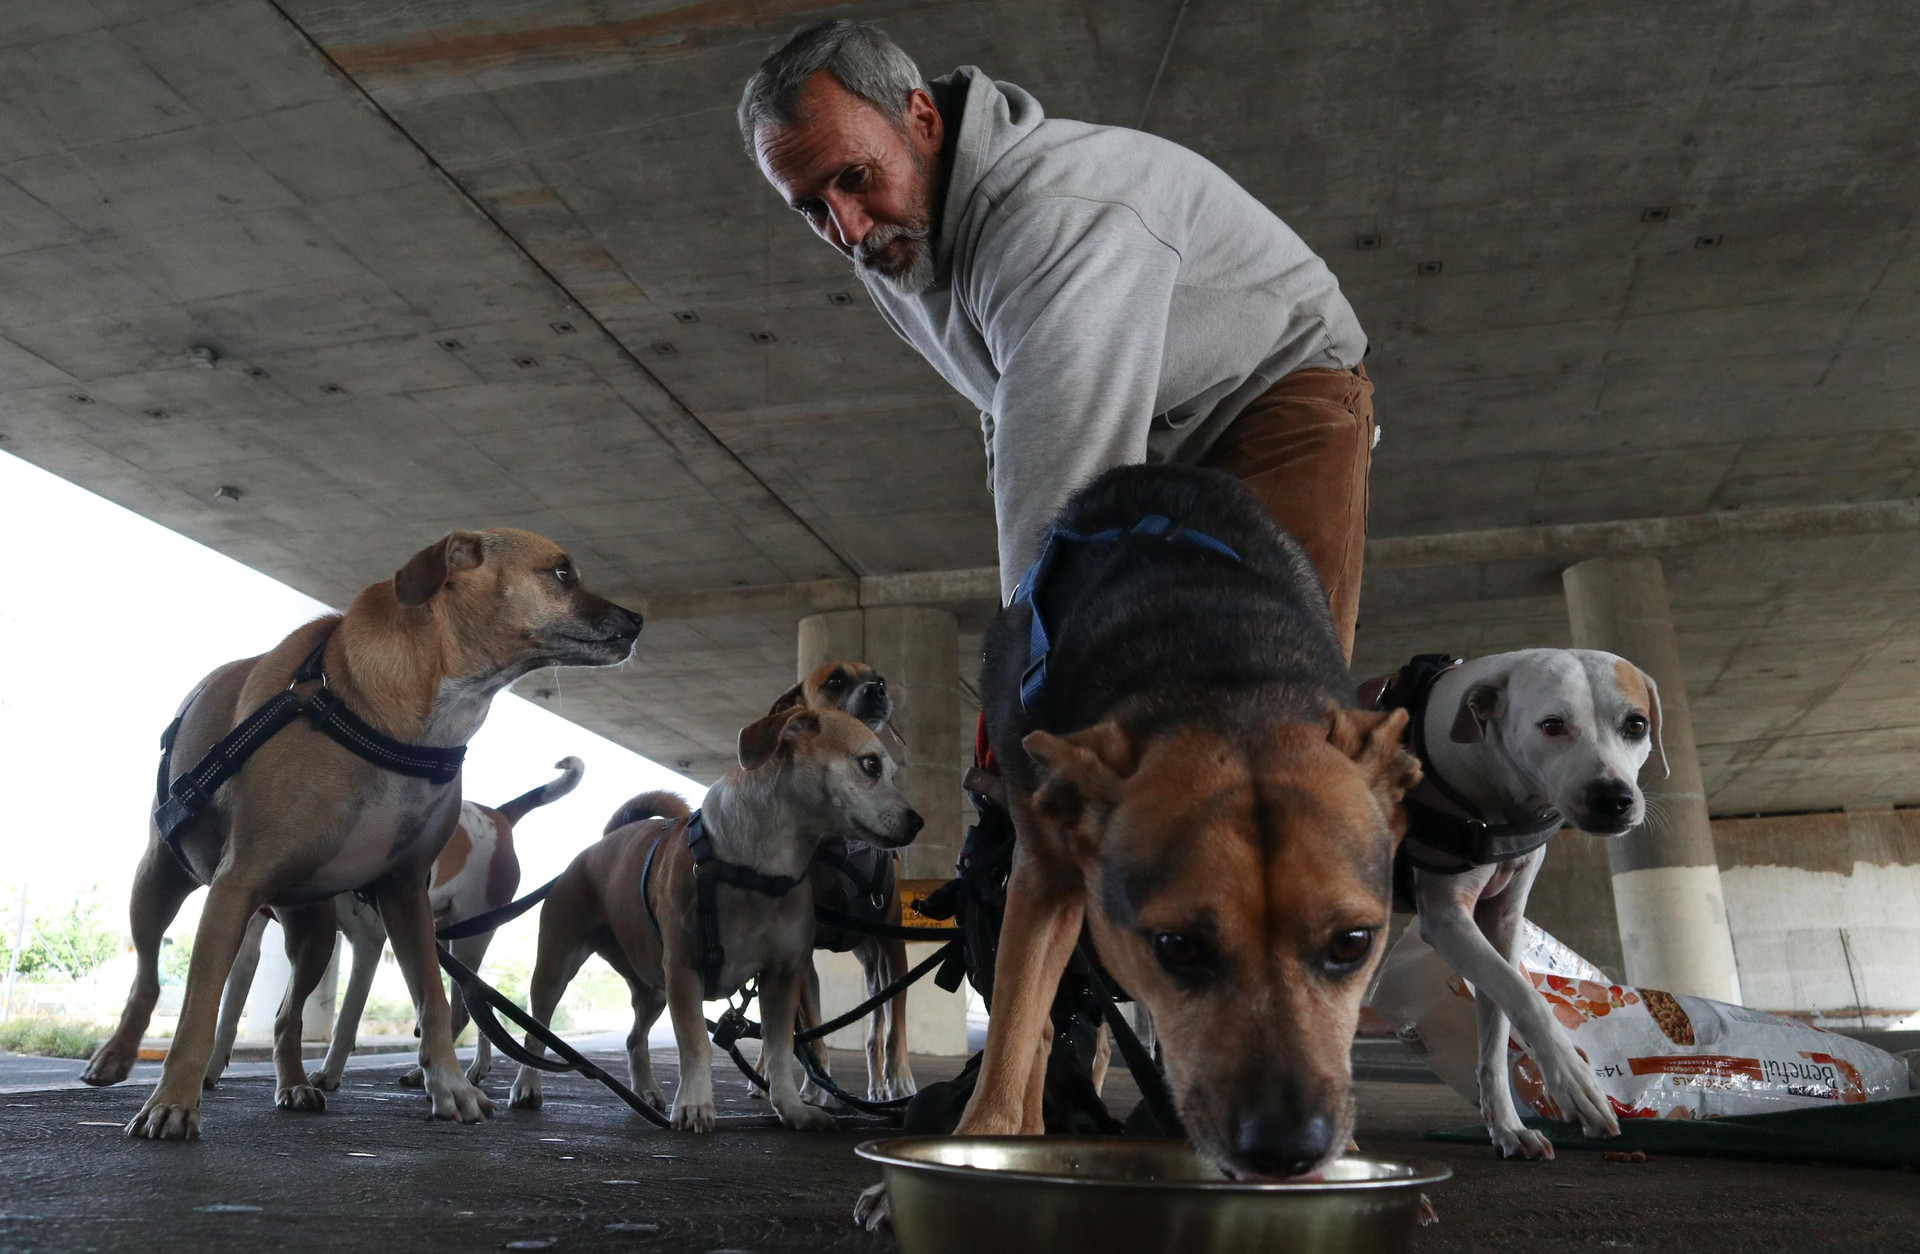 His seven dogs remains a part of his reason to stay on the street and not having a job to pay his rent. No homeless shelter want to take him because of his dogs.